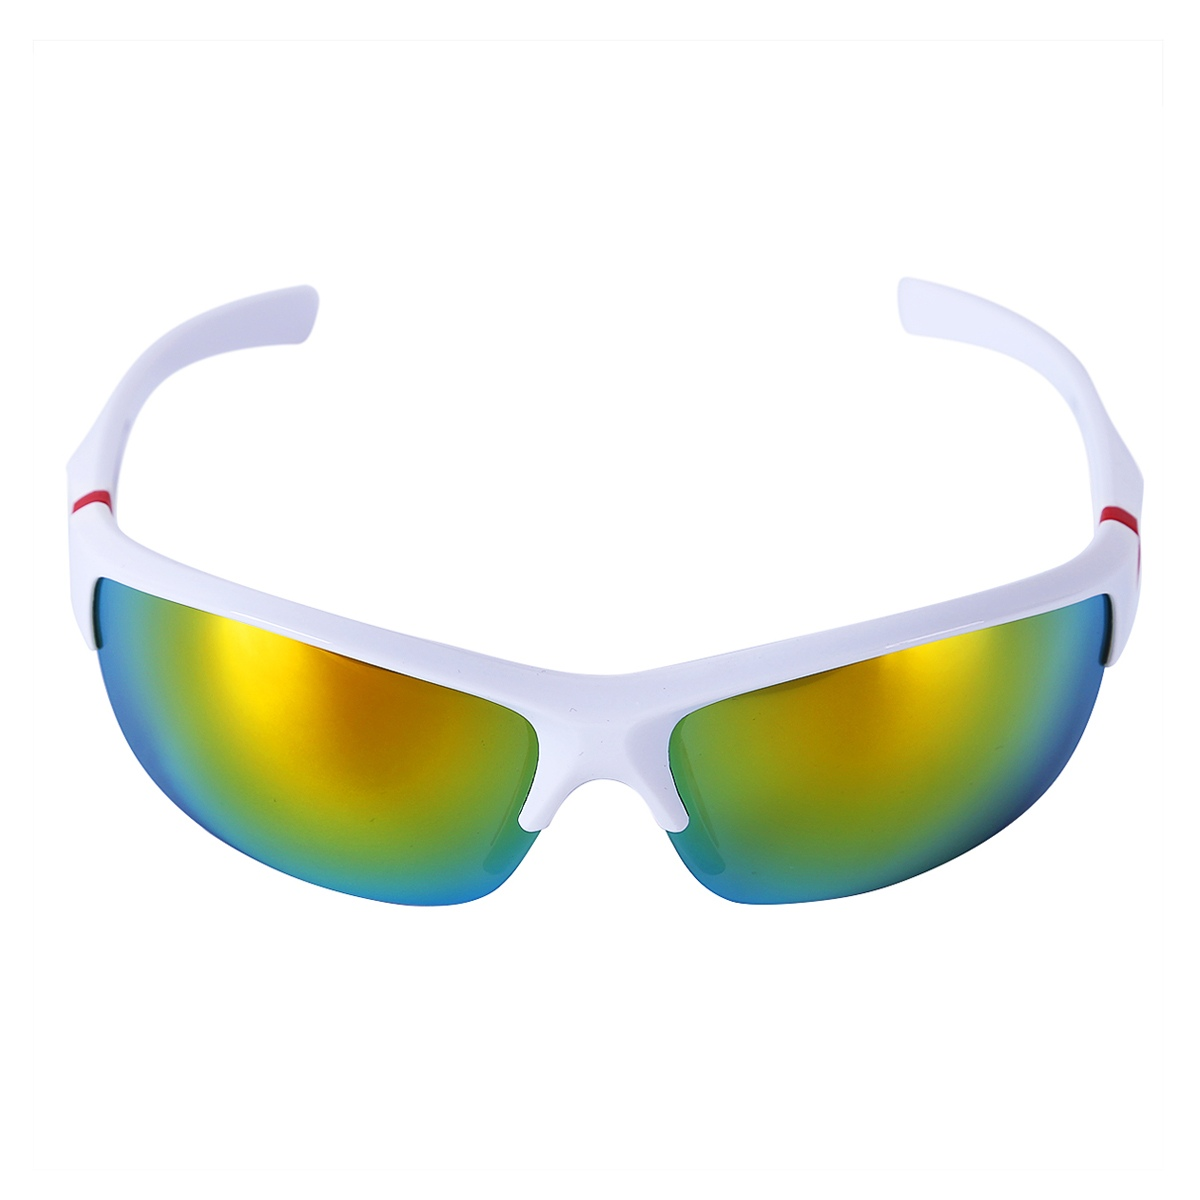 Unisex Men and Women Fashionable Sports Sunglasses with Super Lightweight Frame Strong UV Protection Outdoor Sports Equipment(China)